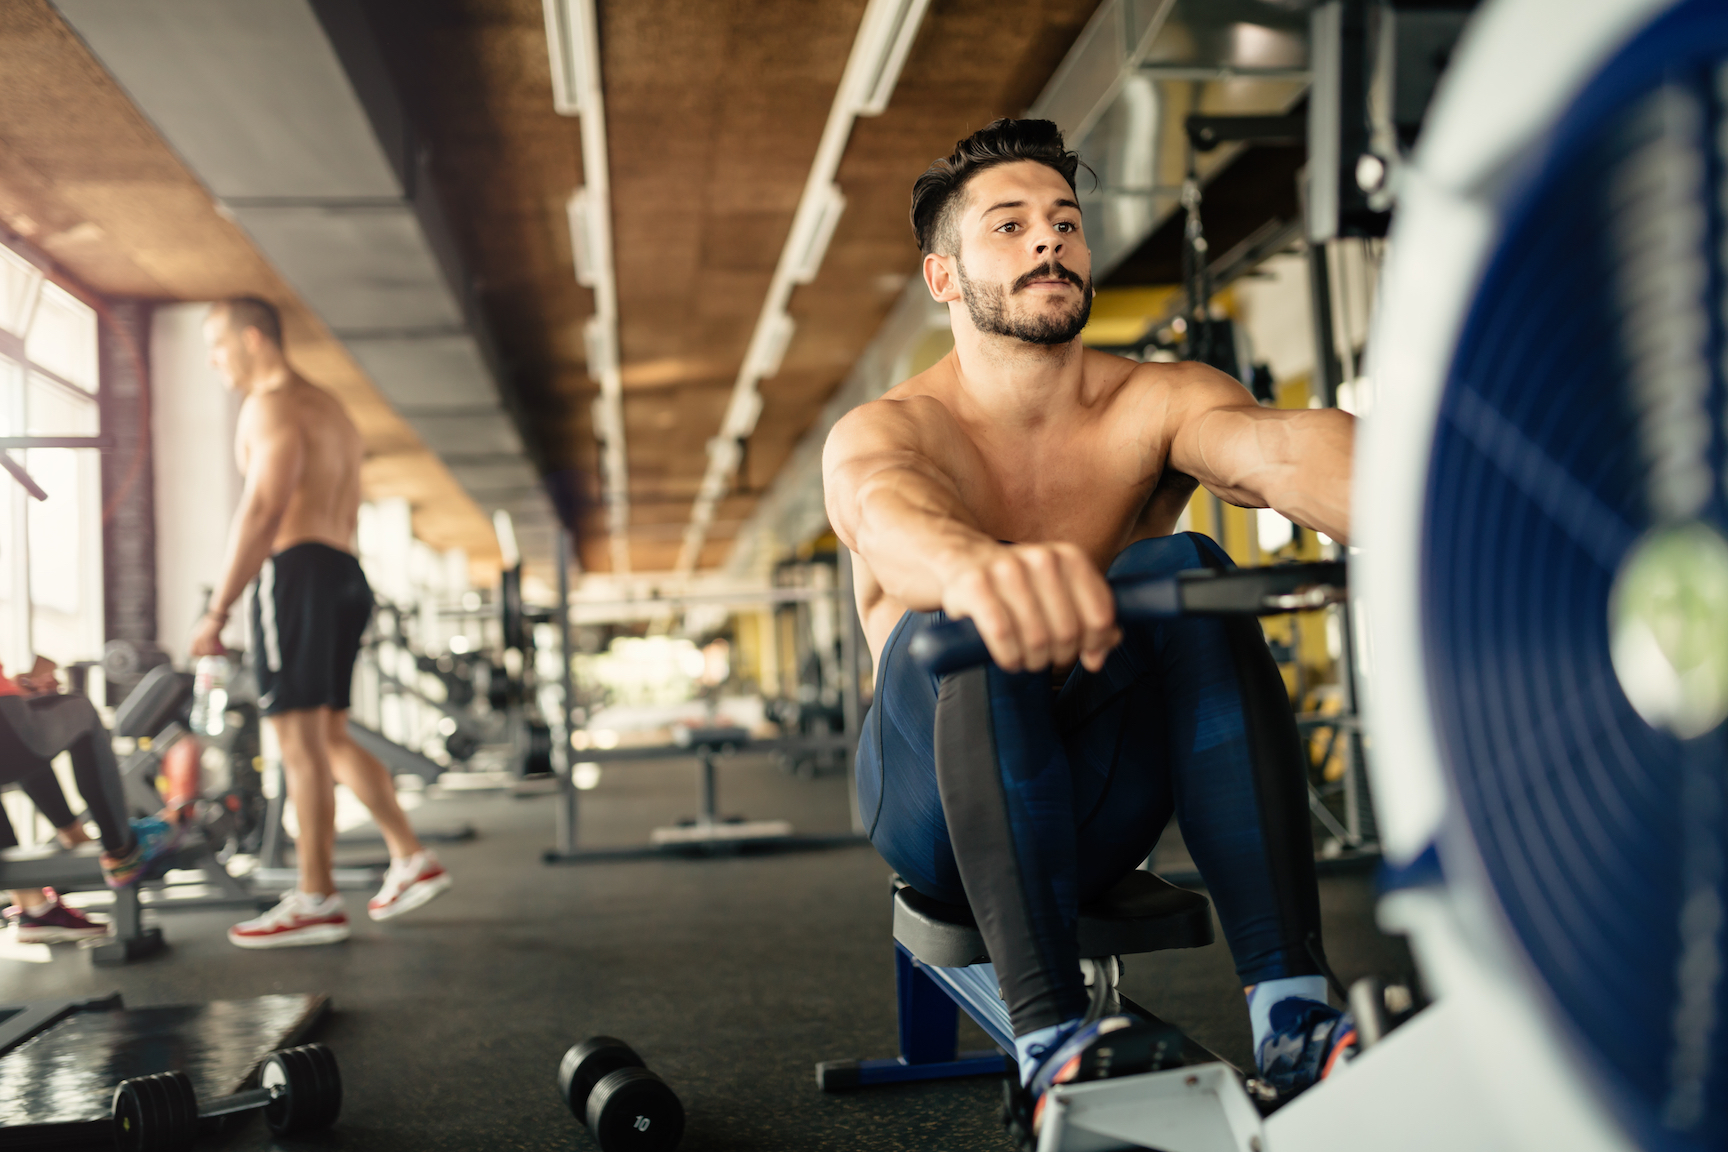 According to a new study, millennials are much more likely than any other age group of men to take an extreme approach to fitness.